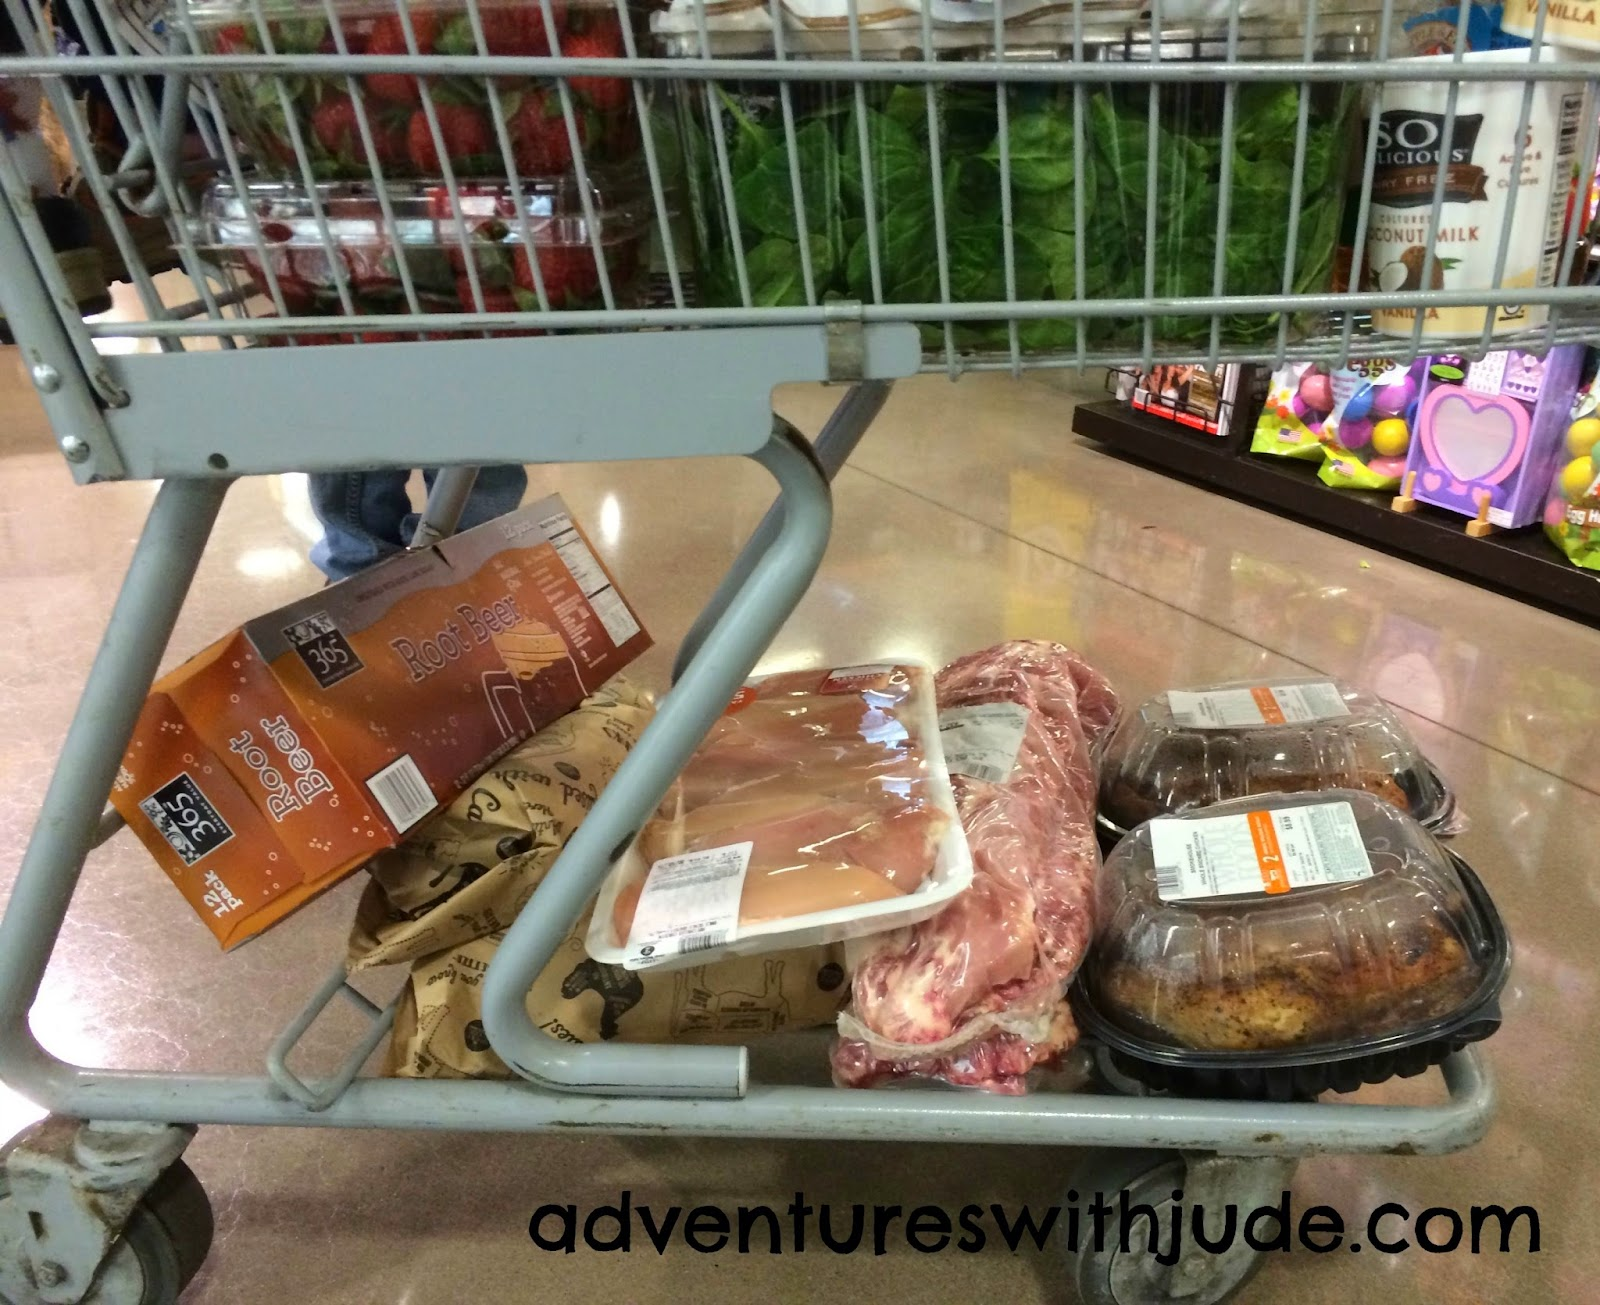 Keep meat seperate in shopping cart